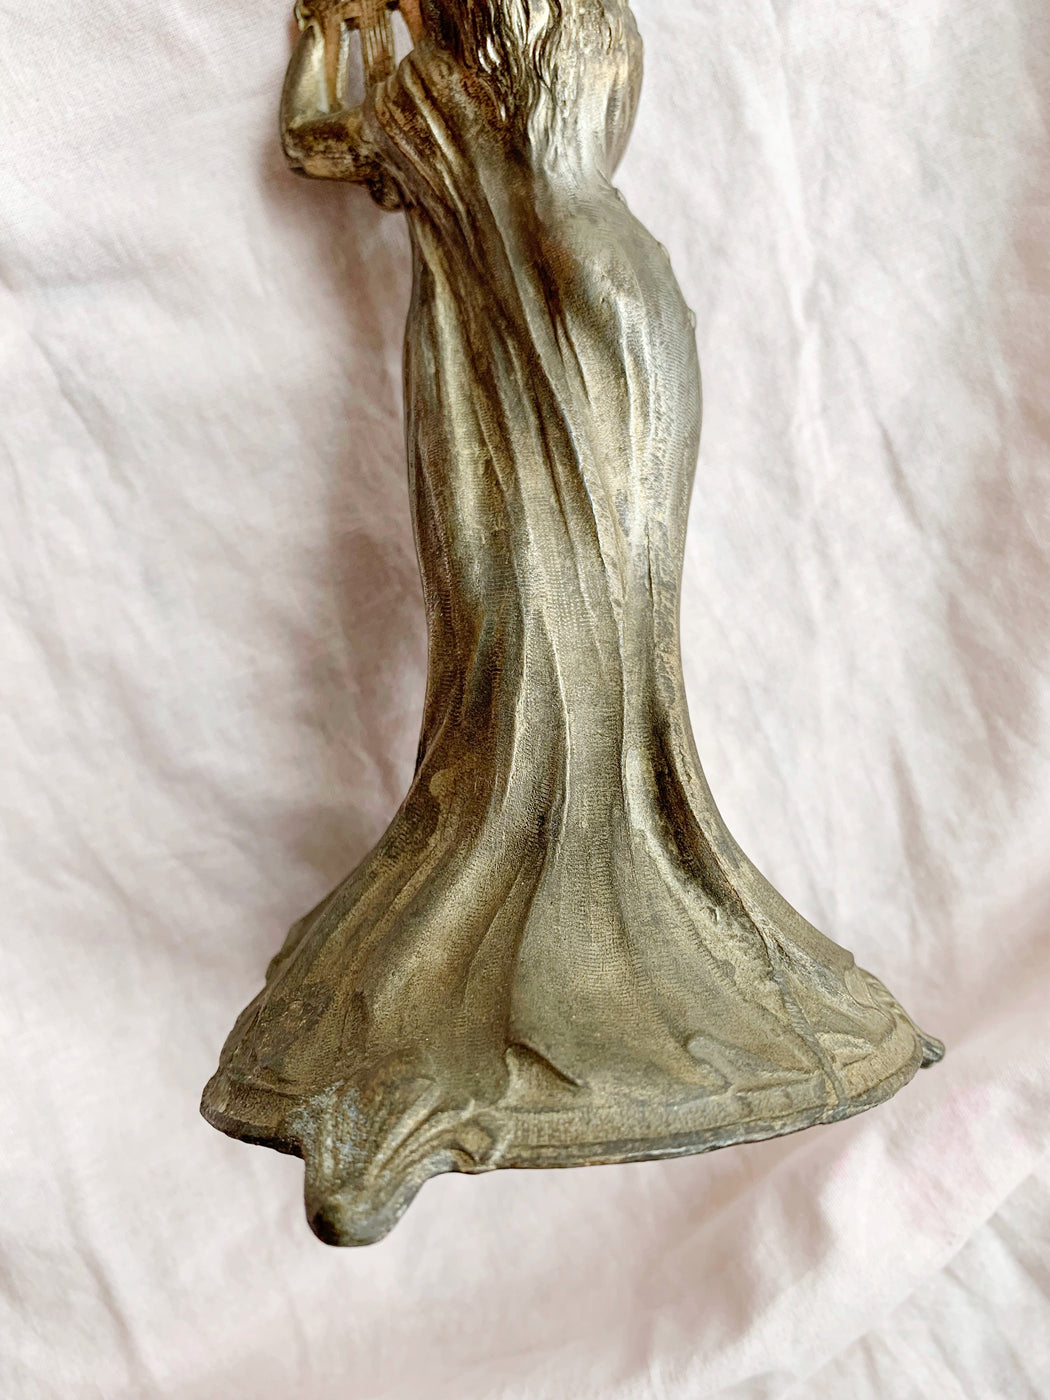 French Art Nouveau Lady Figure Epergne Circa 1880 - Storytellers Workshop